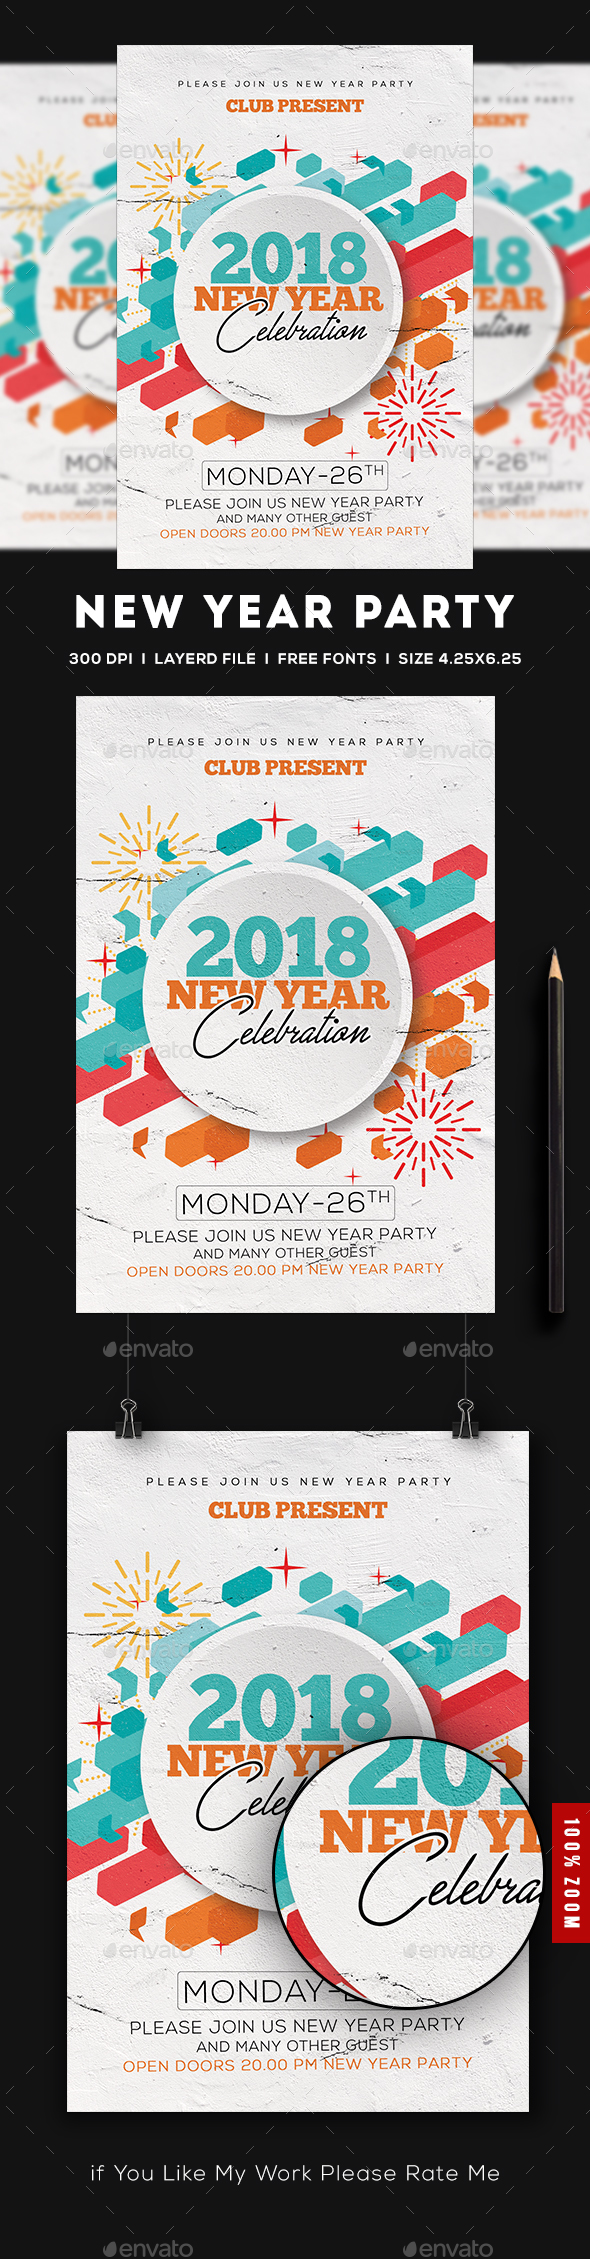 GraphicRiver 2018 New Year Flyer 20950463